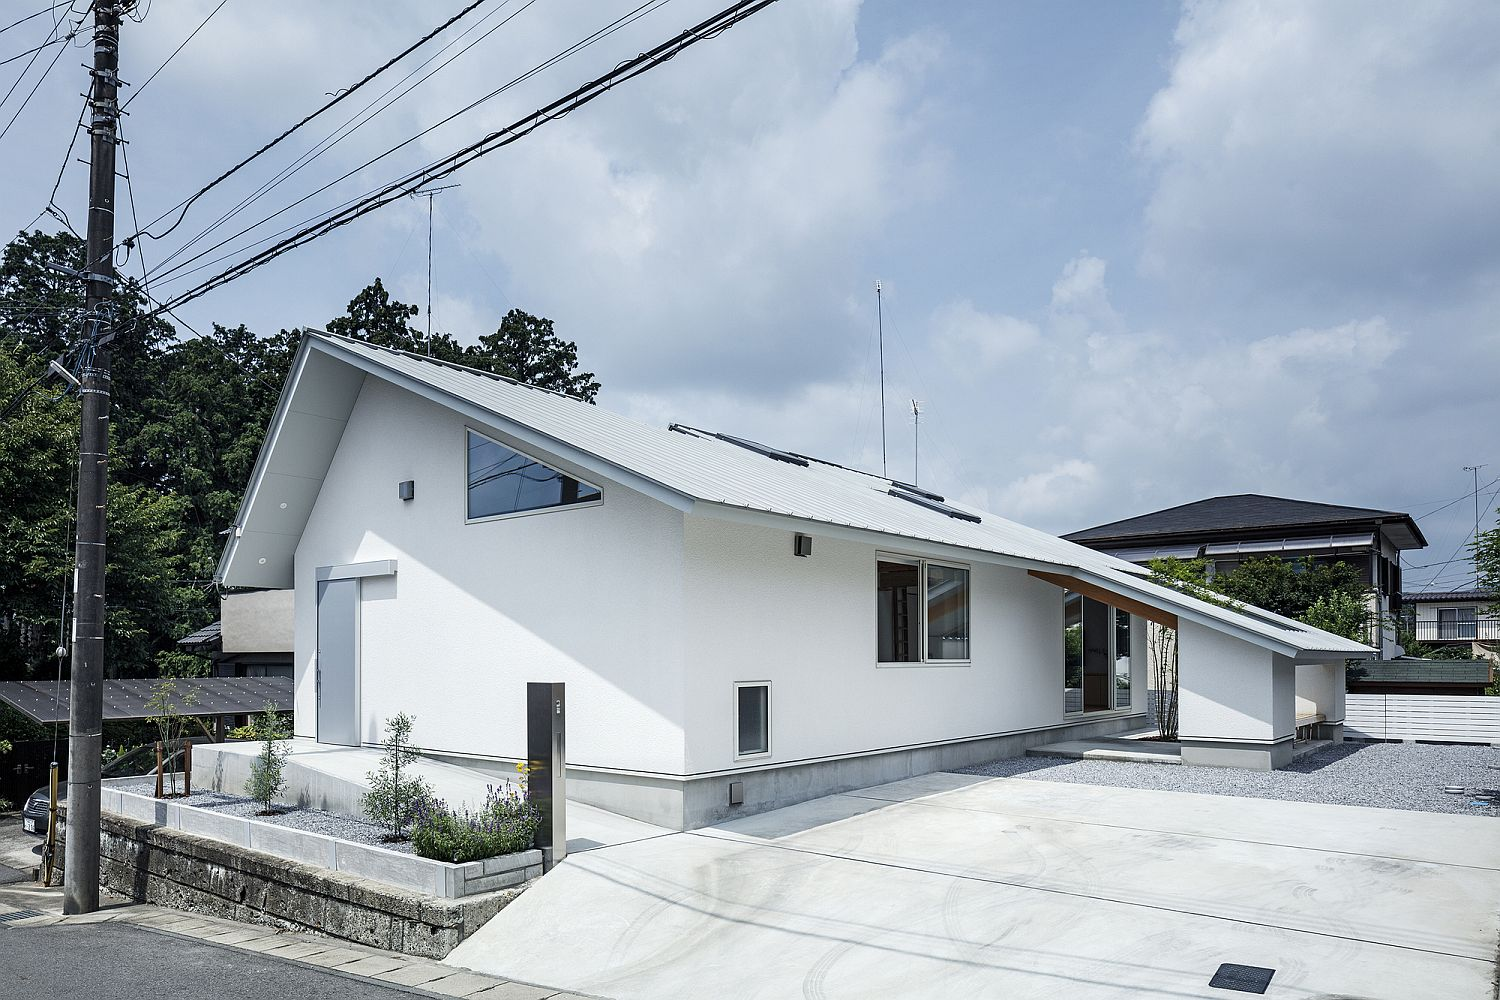 House D Japanese Home With An Eccentric Gabled Roof And Unique Floor Plan Architecture